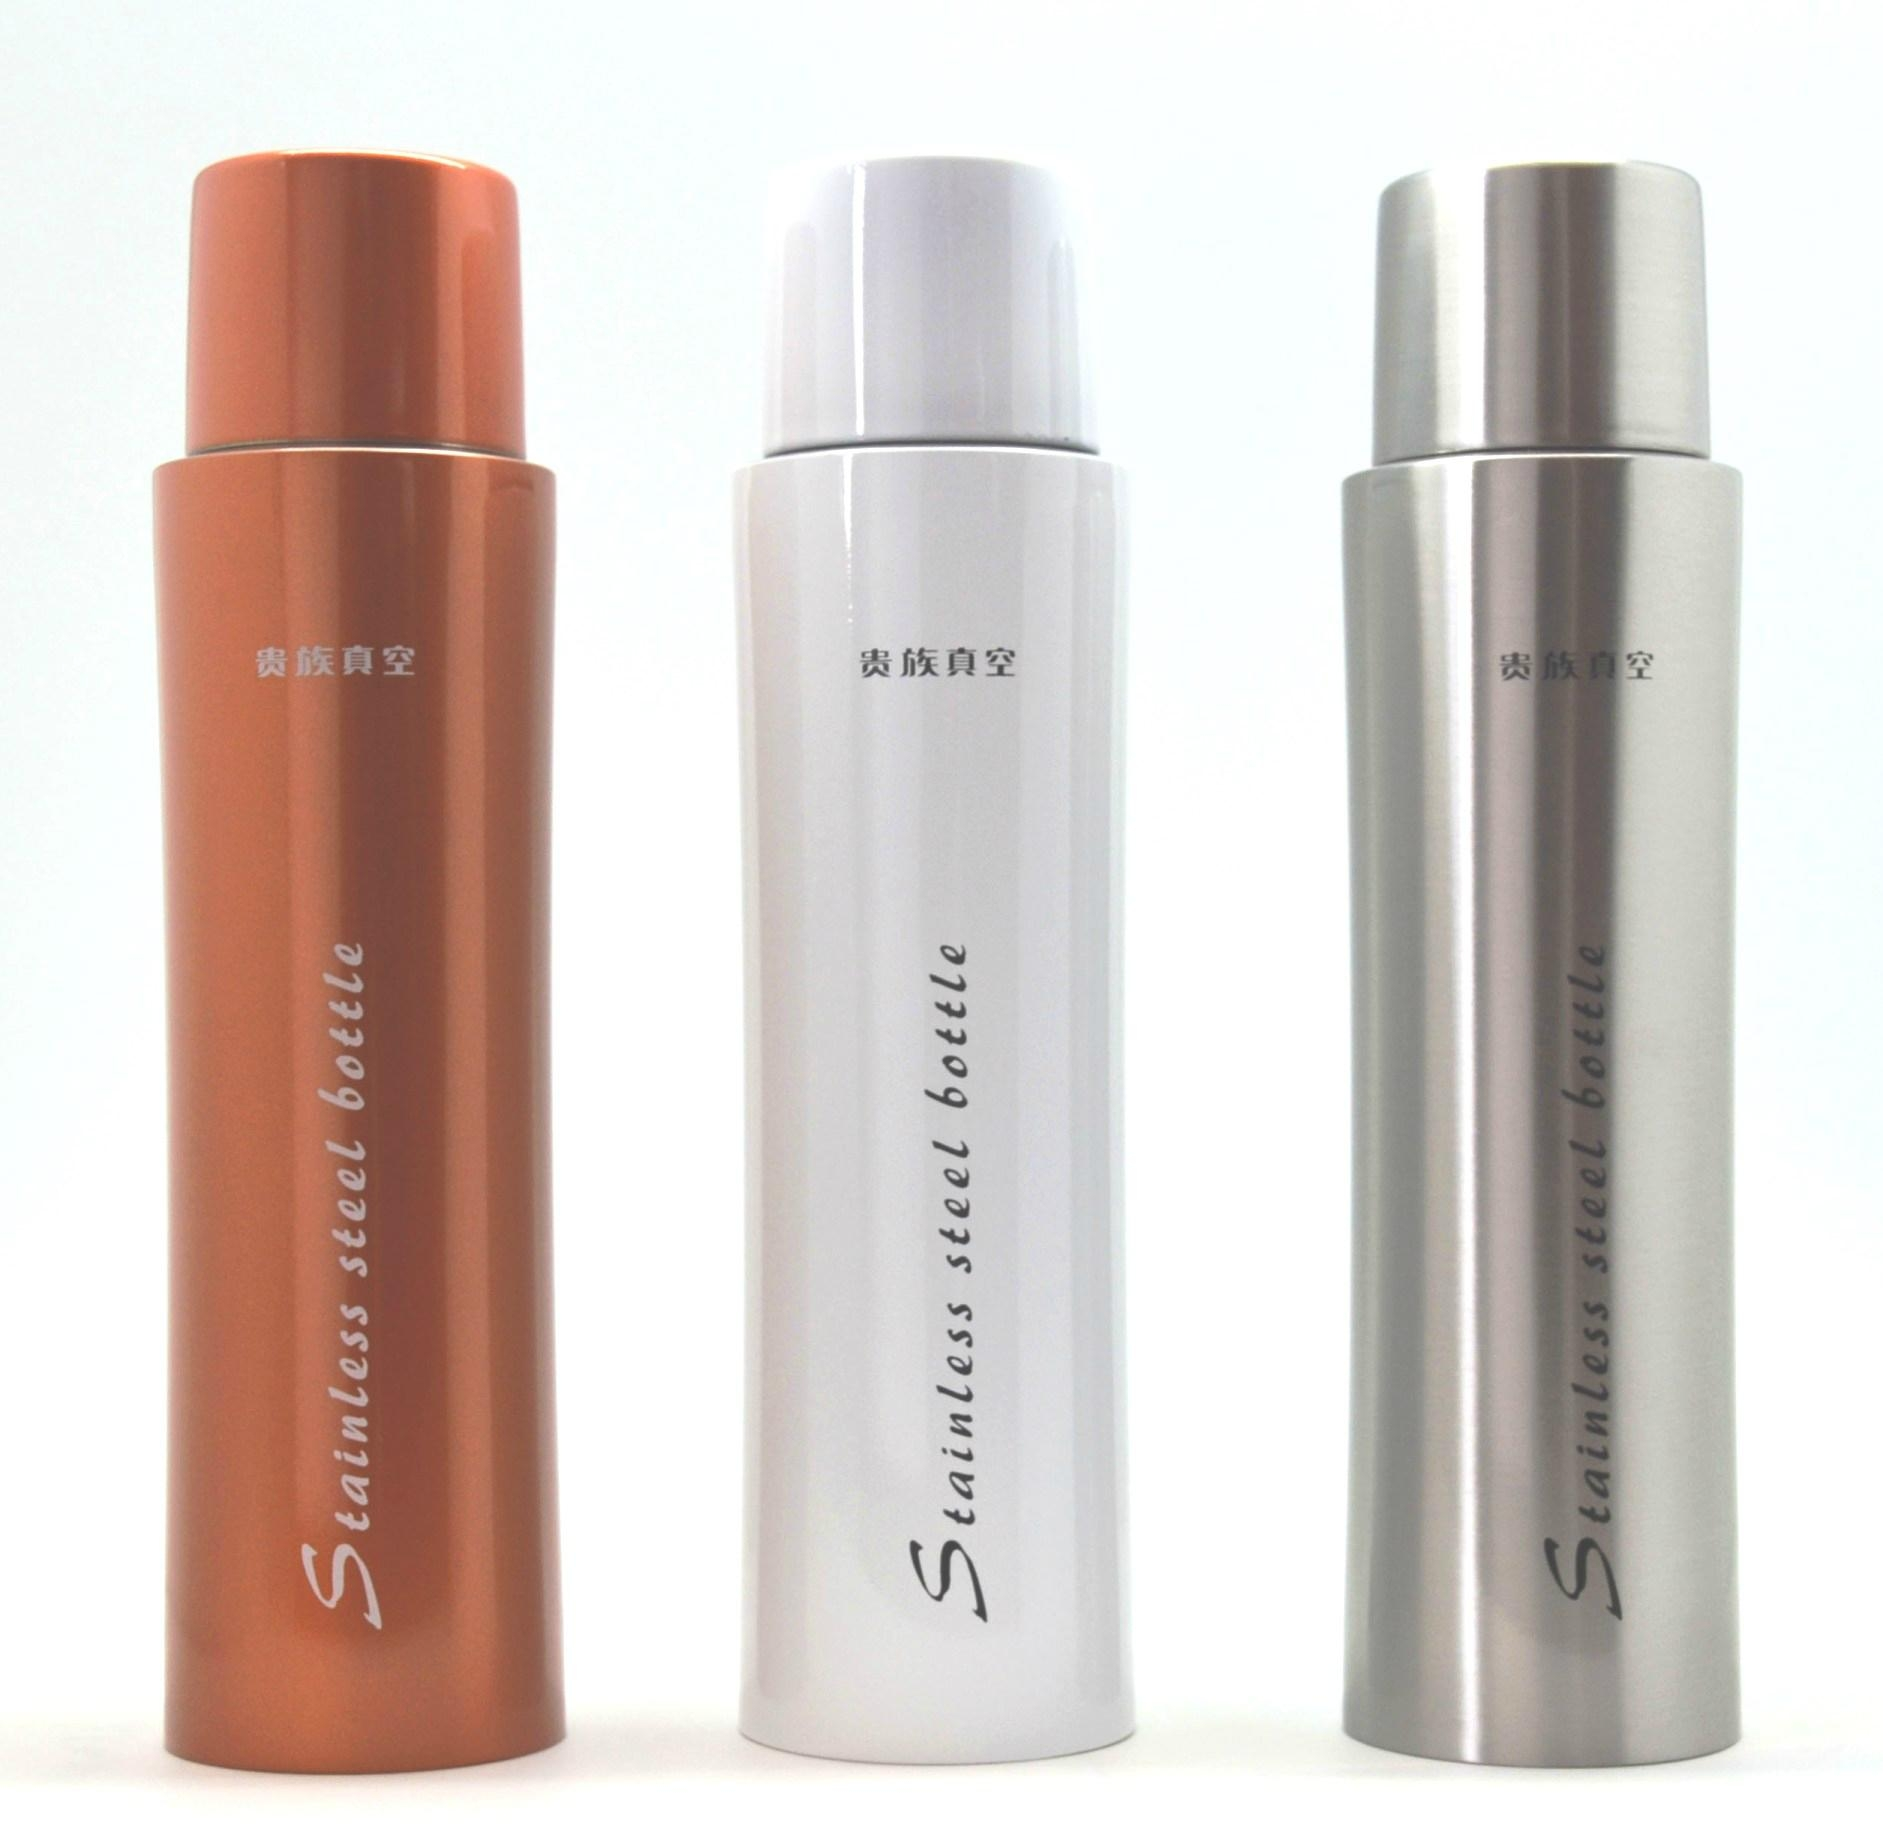 Double wall stainless steel sports bottle vacuum flask thermal travel mug 2